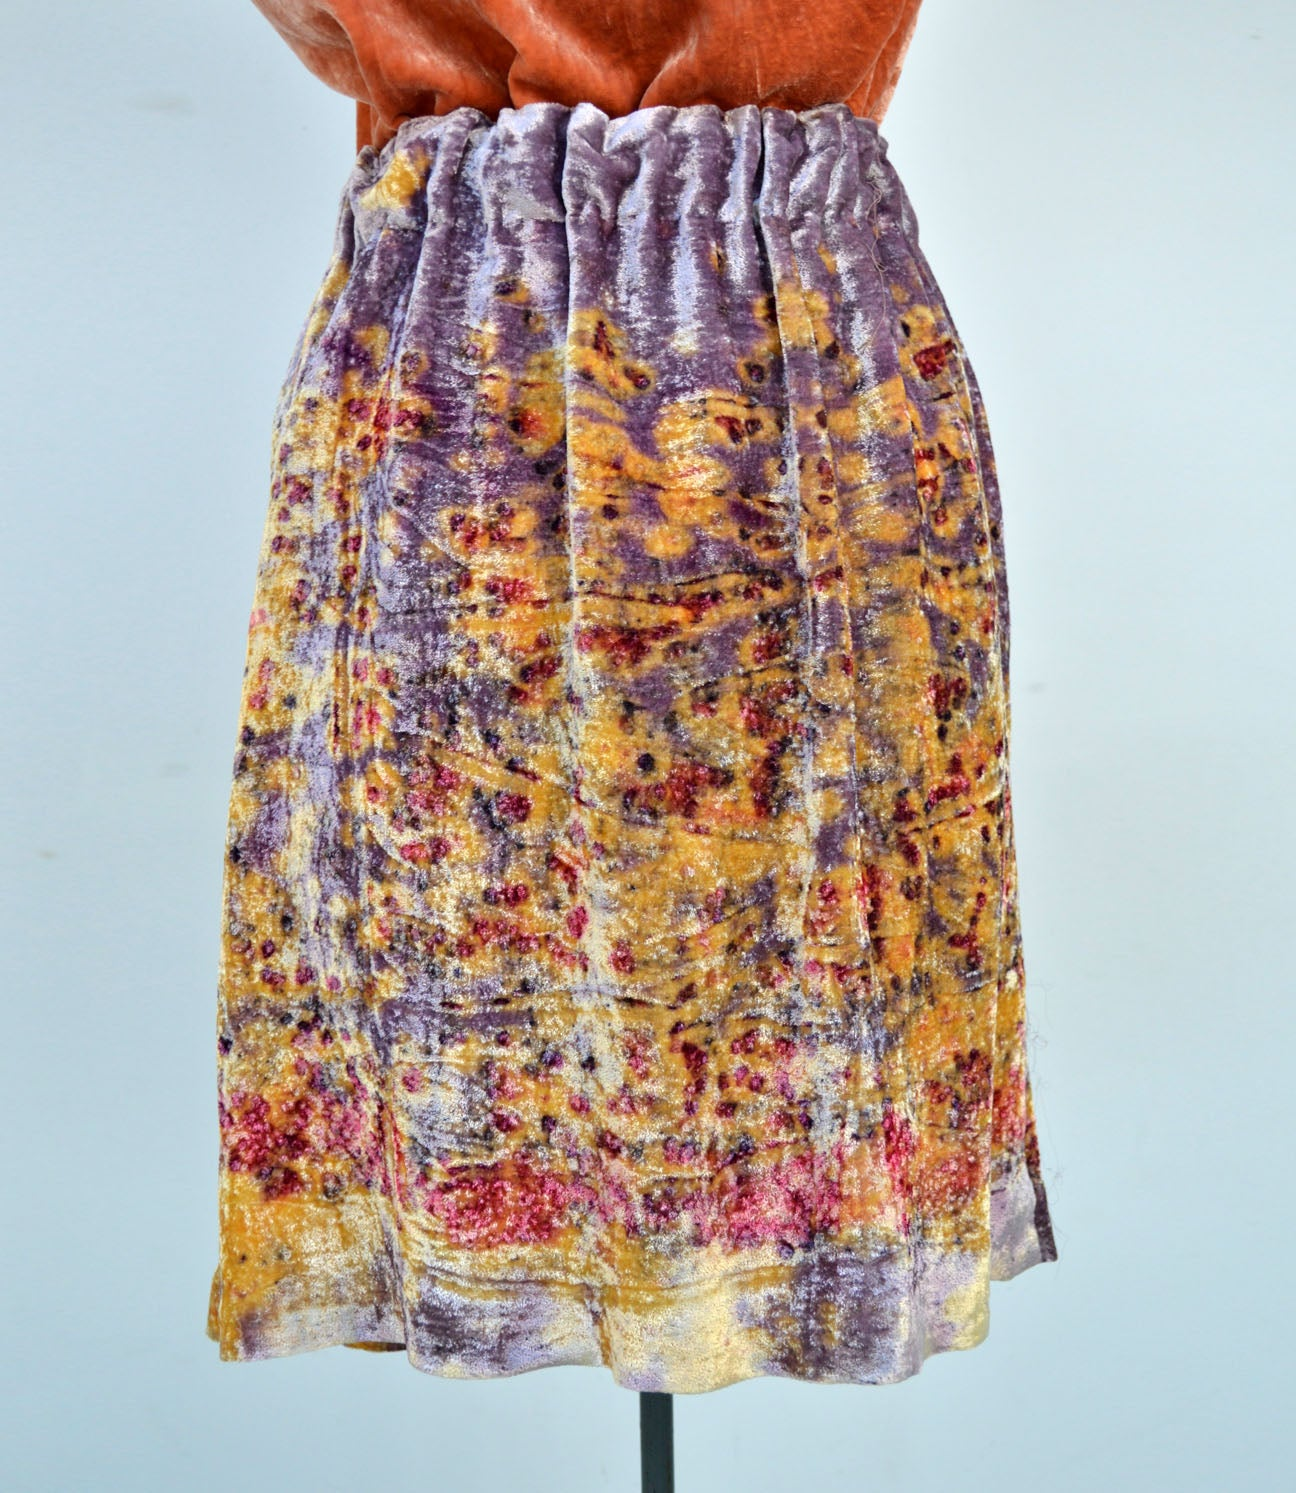 Image of pull on velvet skirt